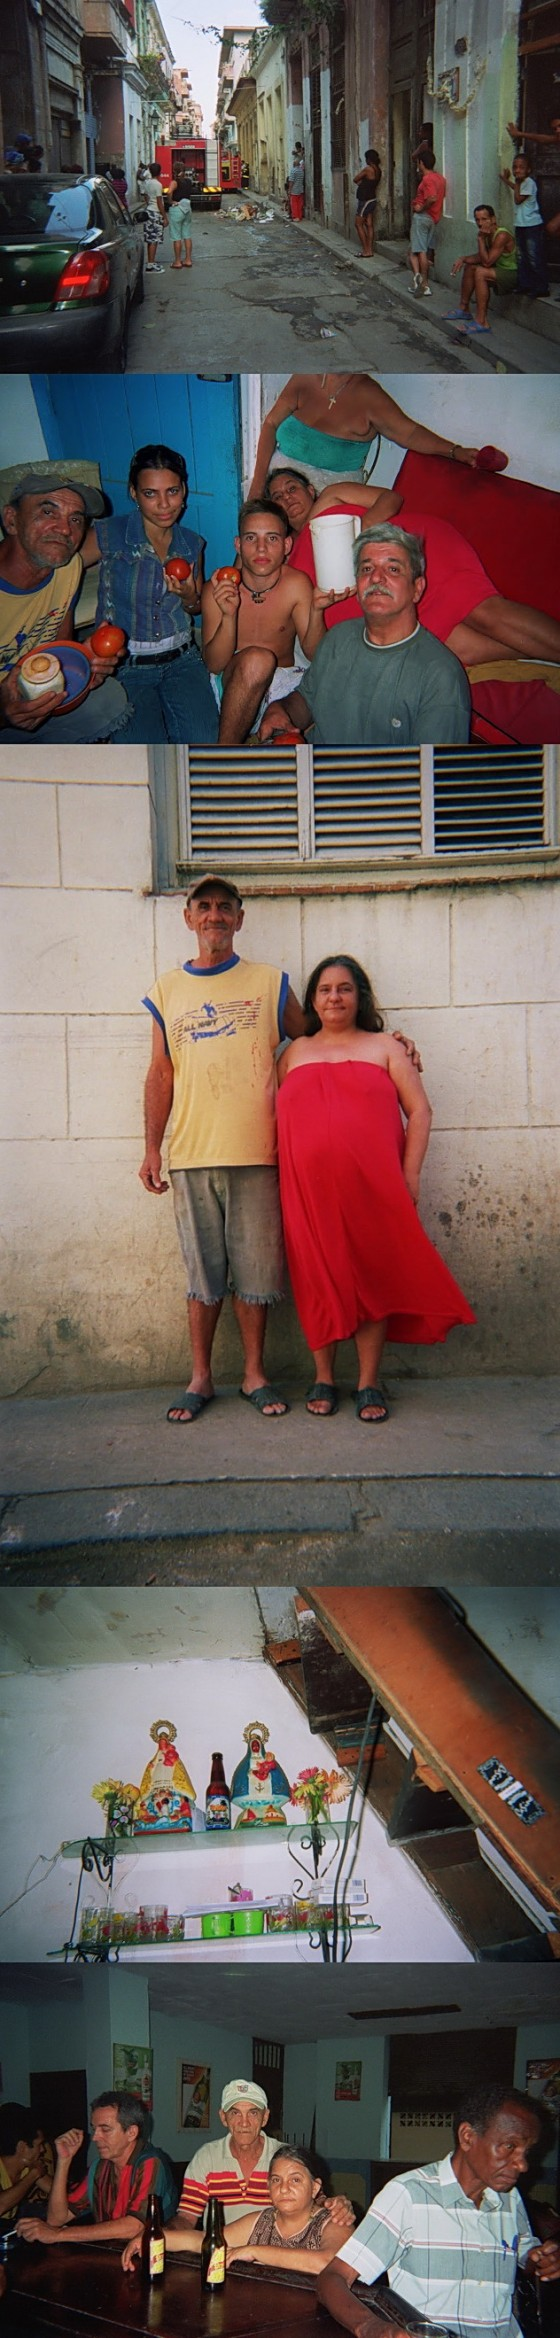 Cuba by a throwaway camera